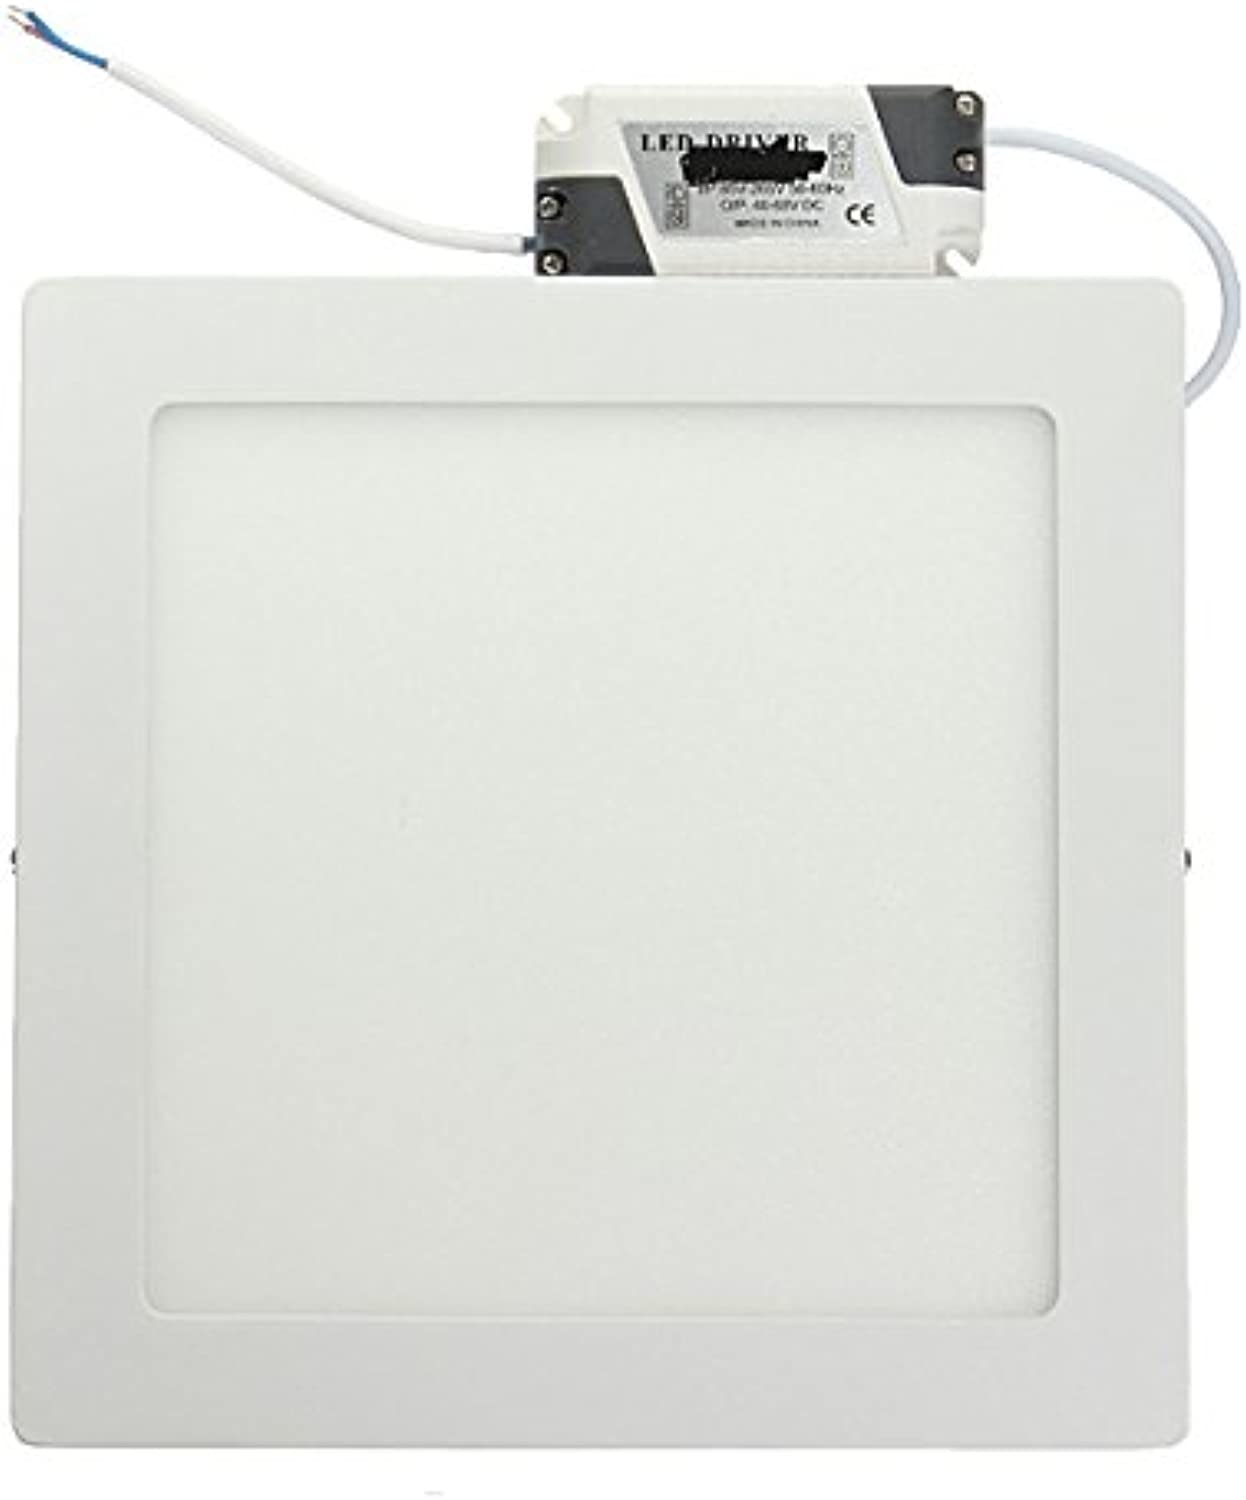 DADEQISH Dimmbare 21W Square LED LED LED Panel Deckenleuchte AC 85-265V Innenlicht (Farbe   Cool Weiß) B07NV8ZG9Q | Marke  9a93ea